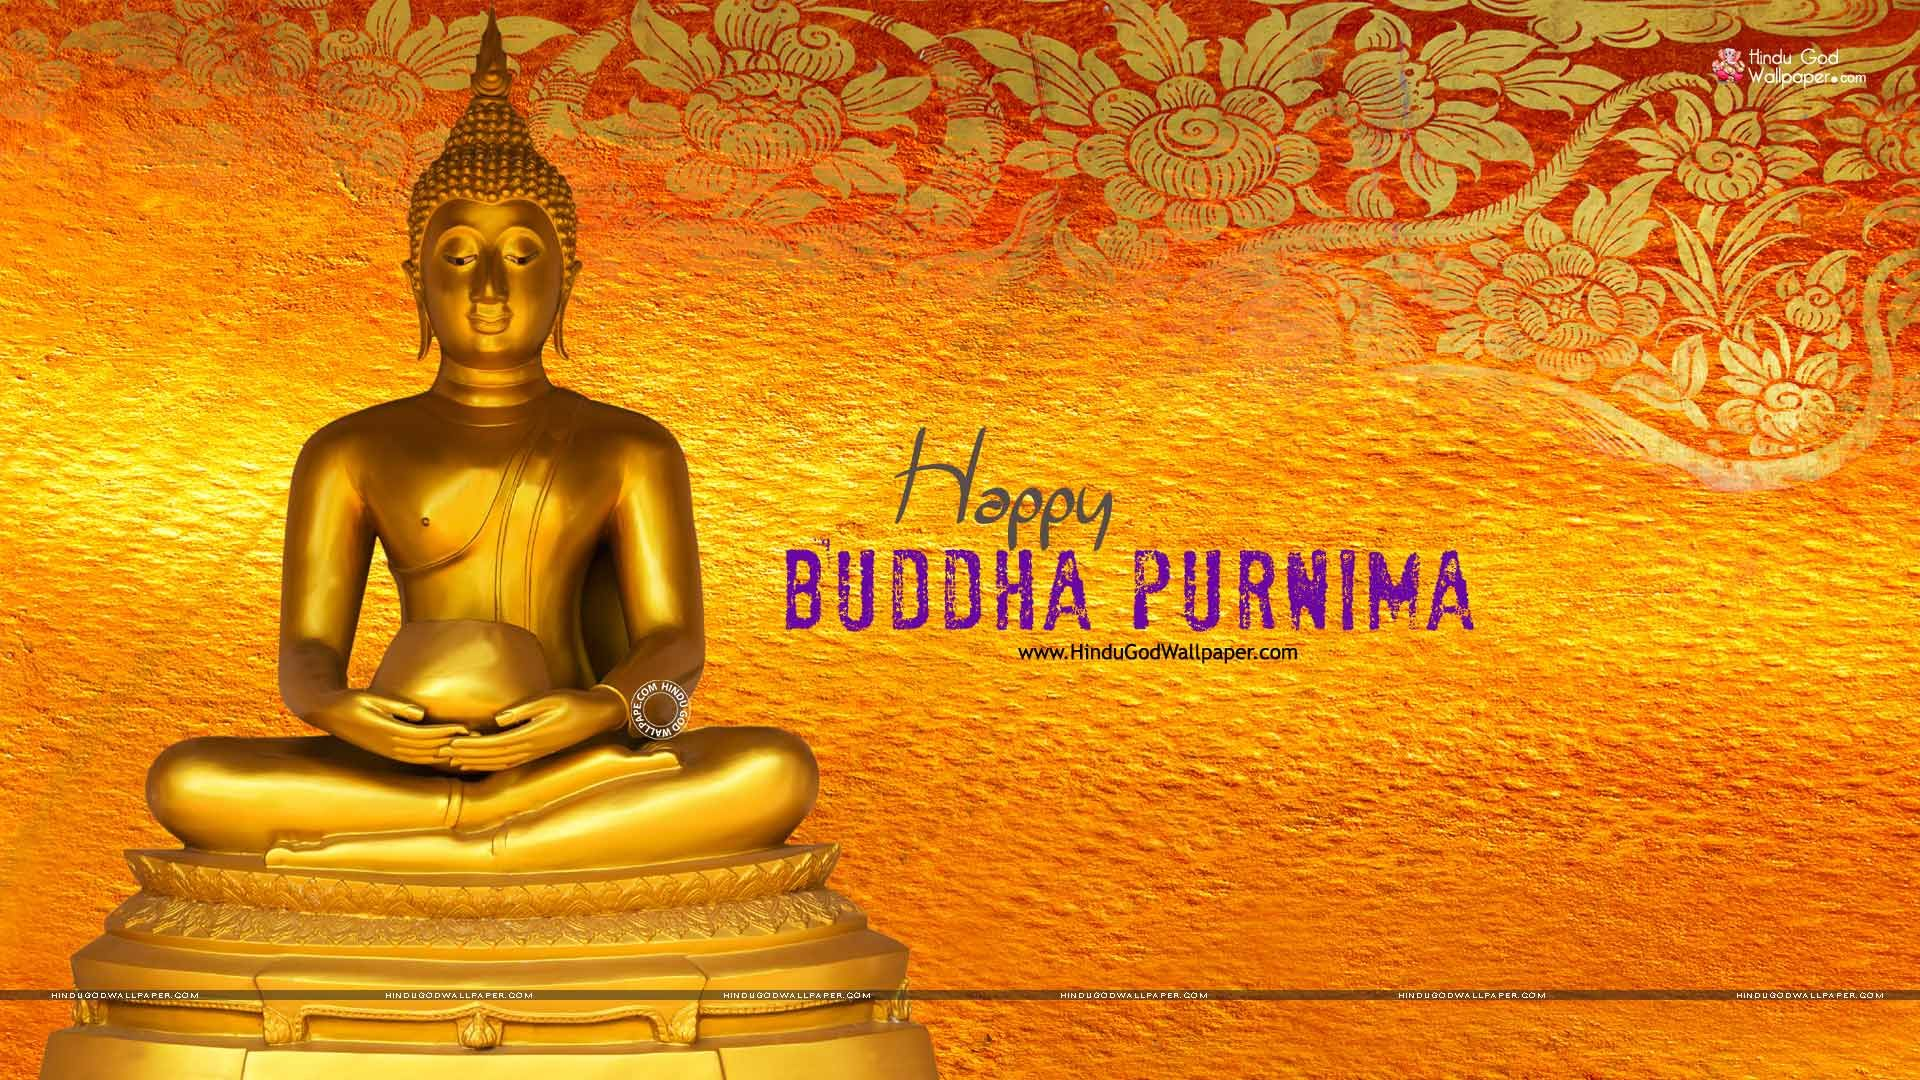 Buddha Purnima HD Wallpapers